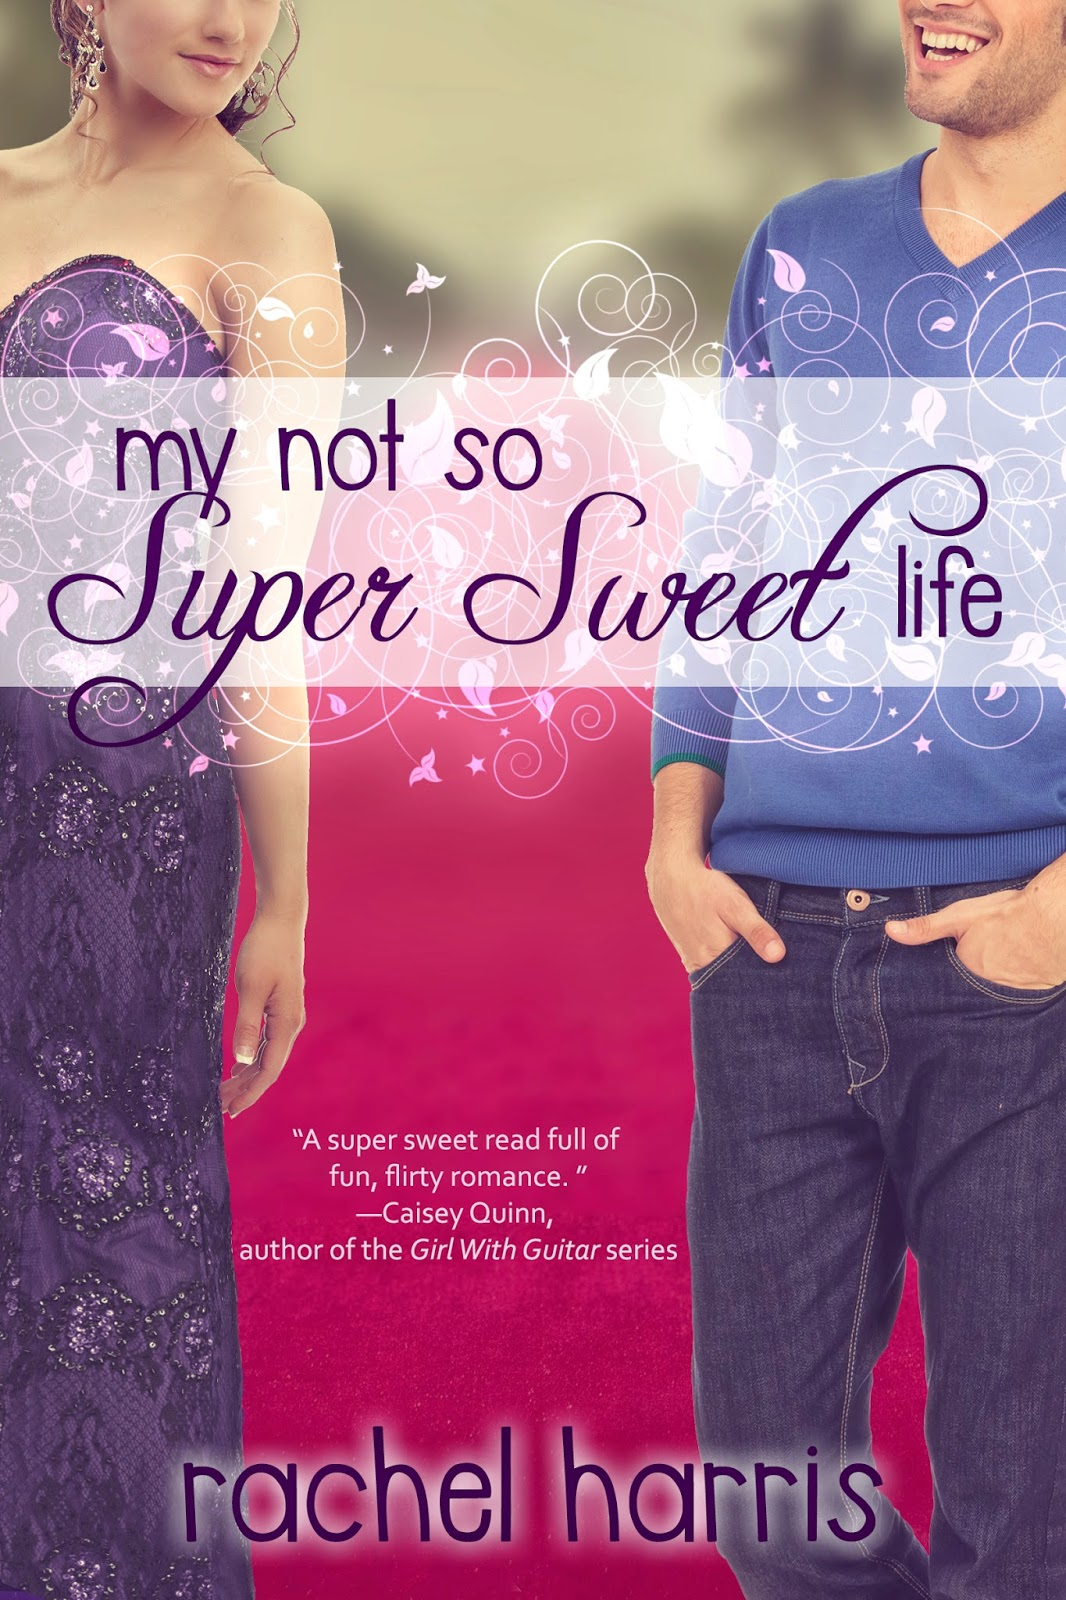 http://www.amazon.com/Super-Sweet-Life-Entangled-Teen-ebook/dp/B00HTJH9J0/ref=la_B007AHT3LS_1_5?s=books&ie=UTF8&qid=1398135184&sr=1-5